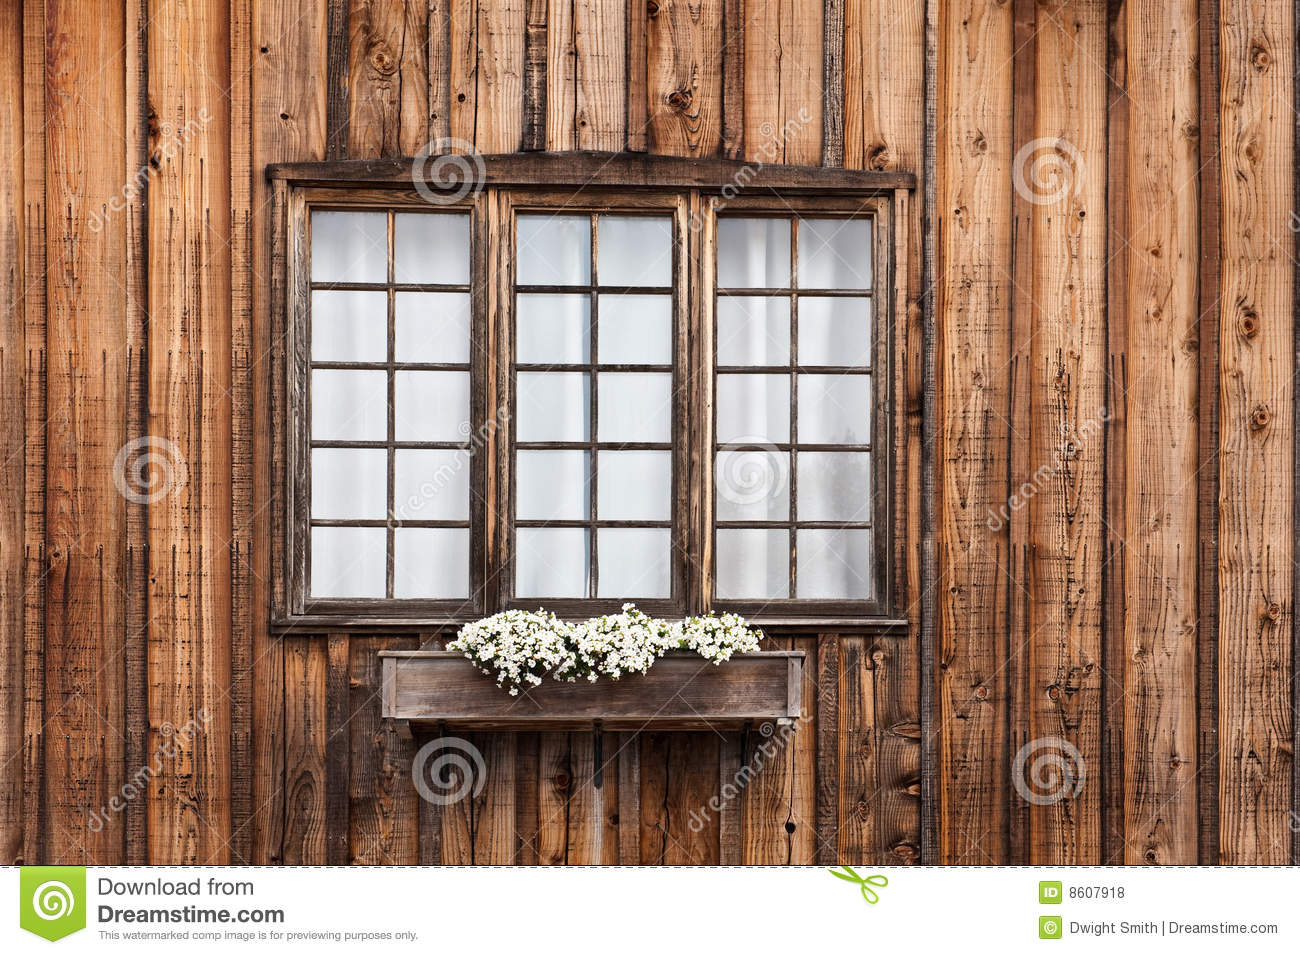 Cabin Window Stock Photo Image Of Colorful Village Panes 8607918